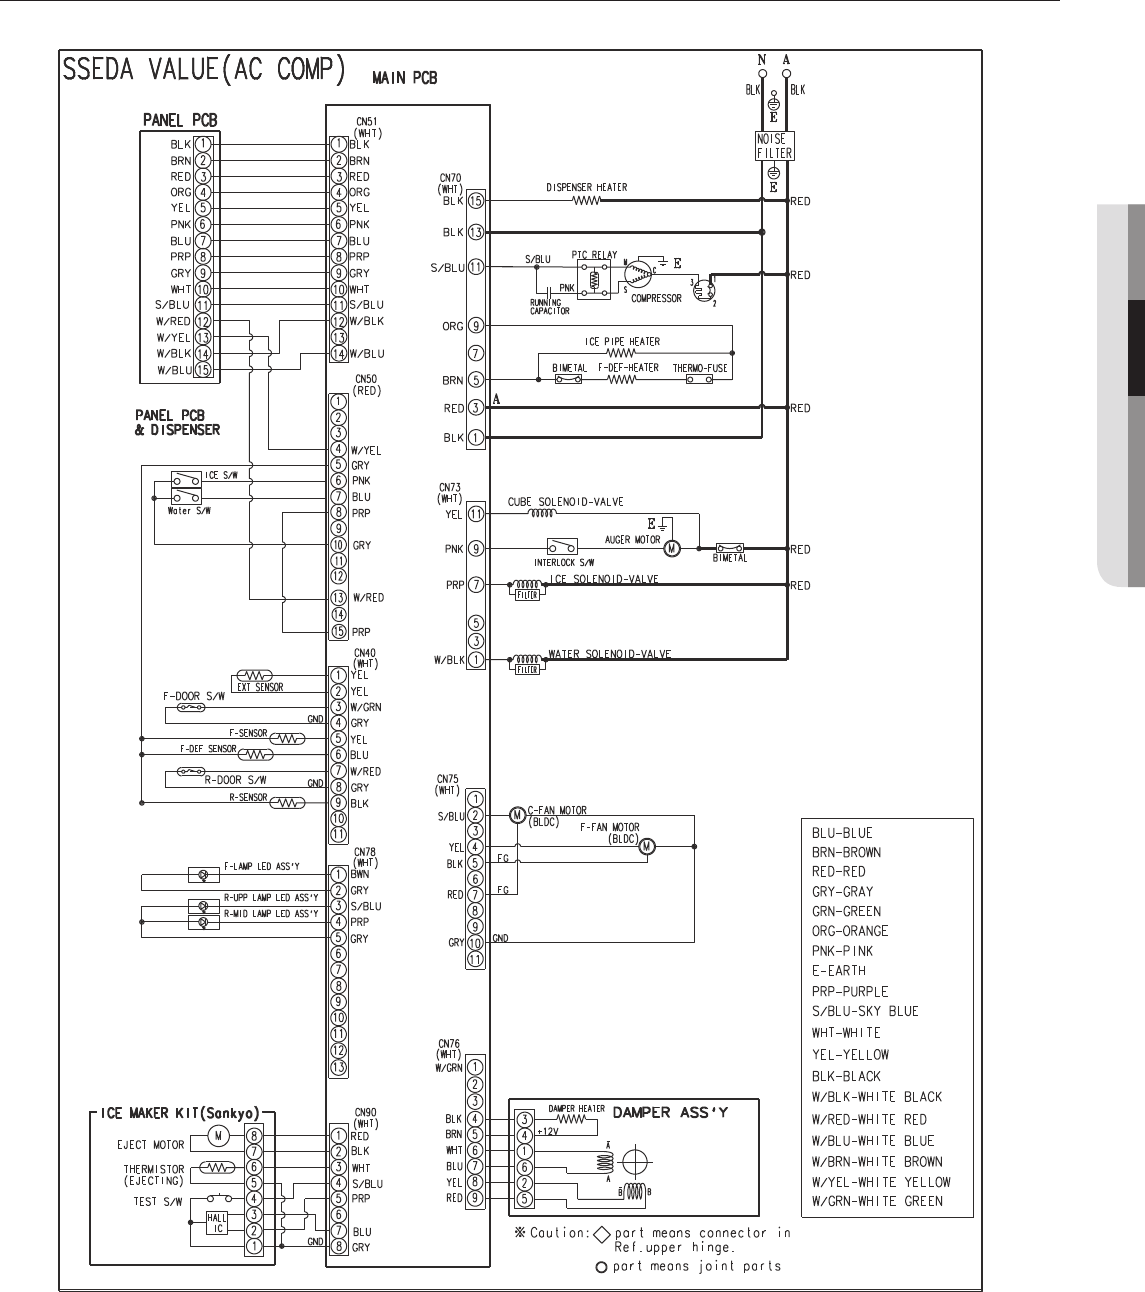 21aa6212 5c03 4539 ac02 99a0885d5c5e bg1f page 31 of samsung refrigerator rs261mdwp user guide refrigerator wiring diagram pdf at gsmx.co